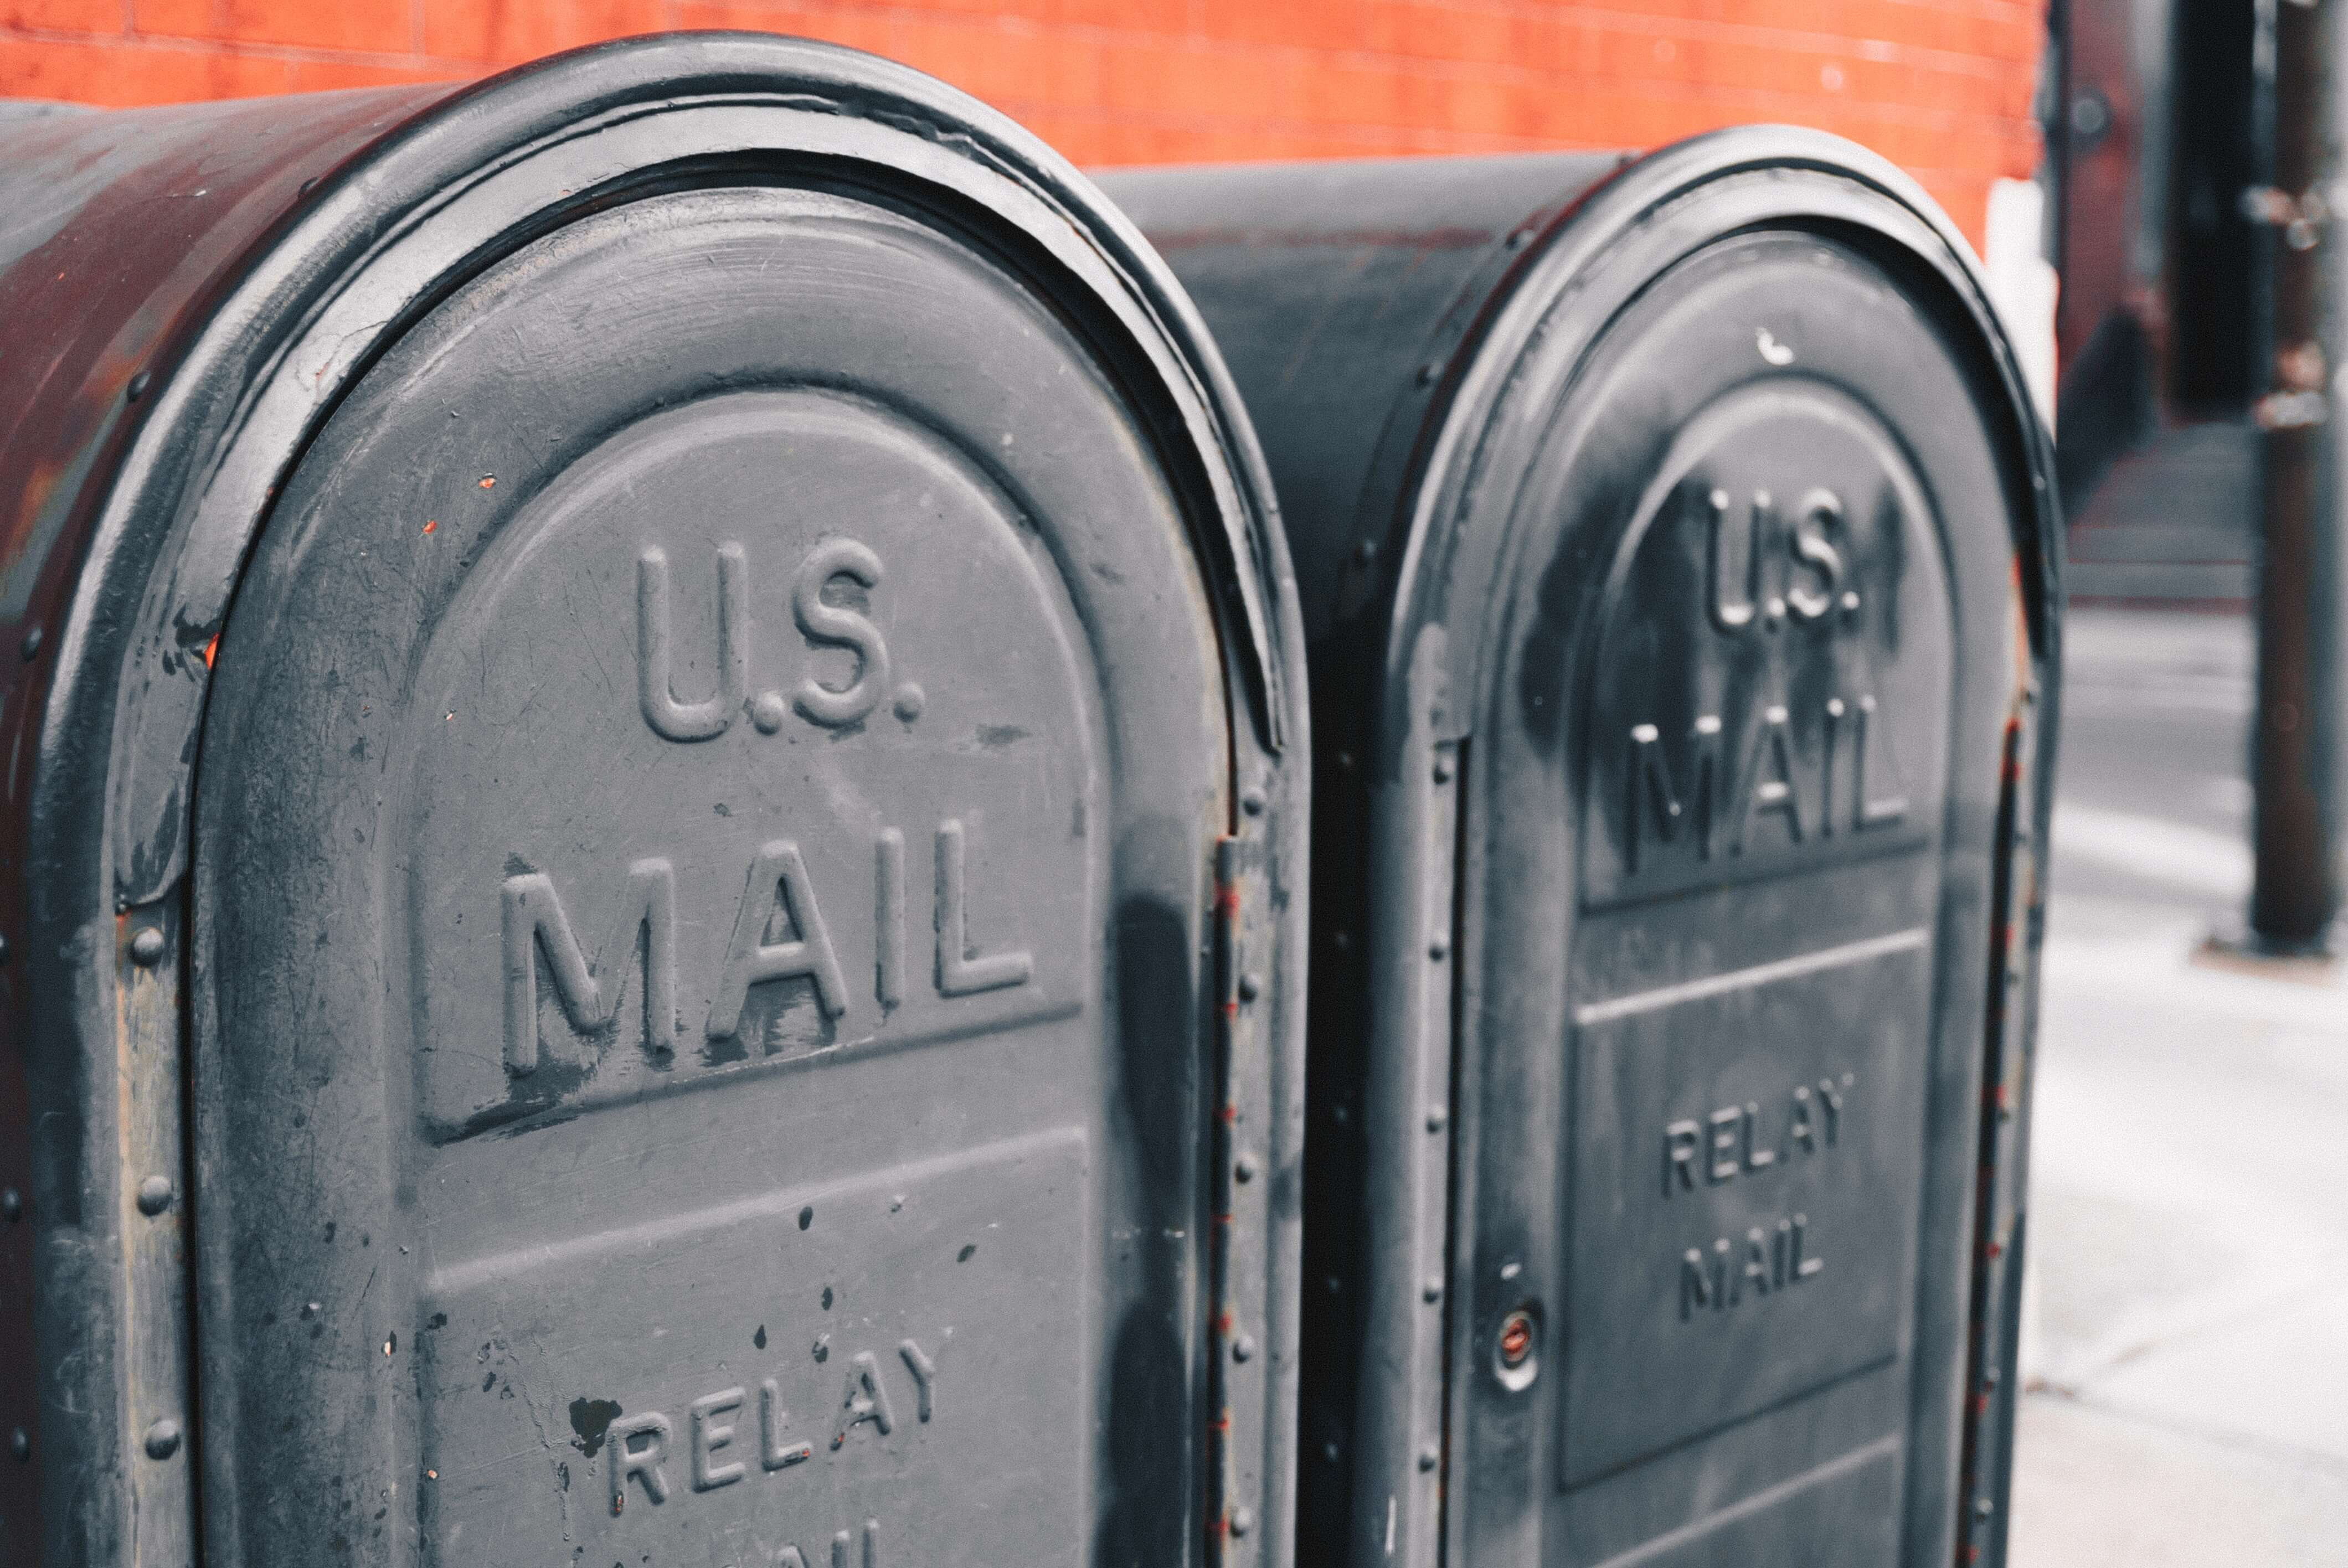 U.S. mail boxes